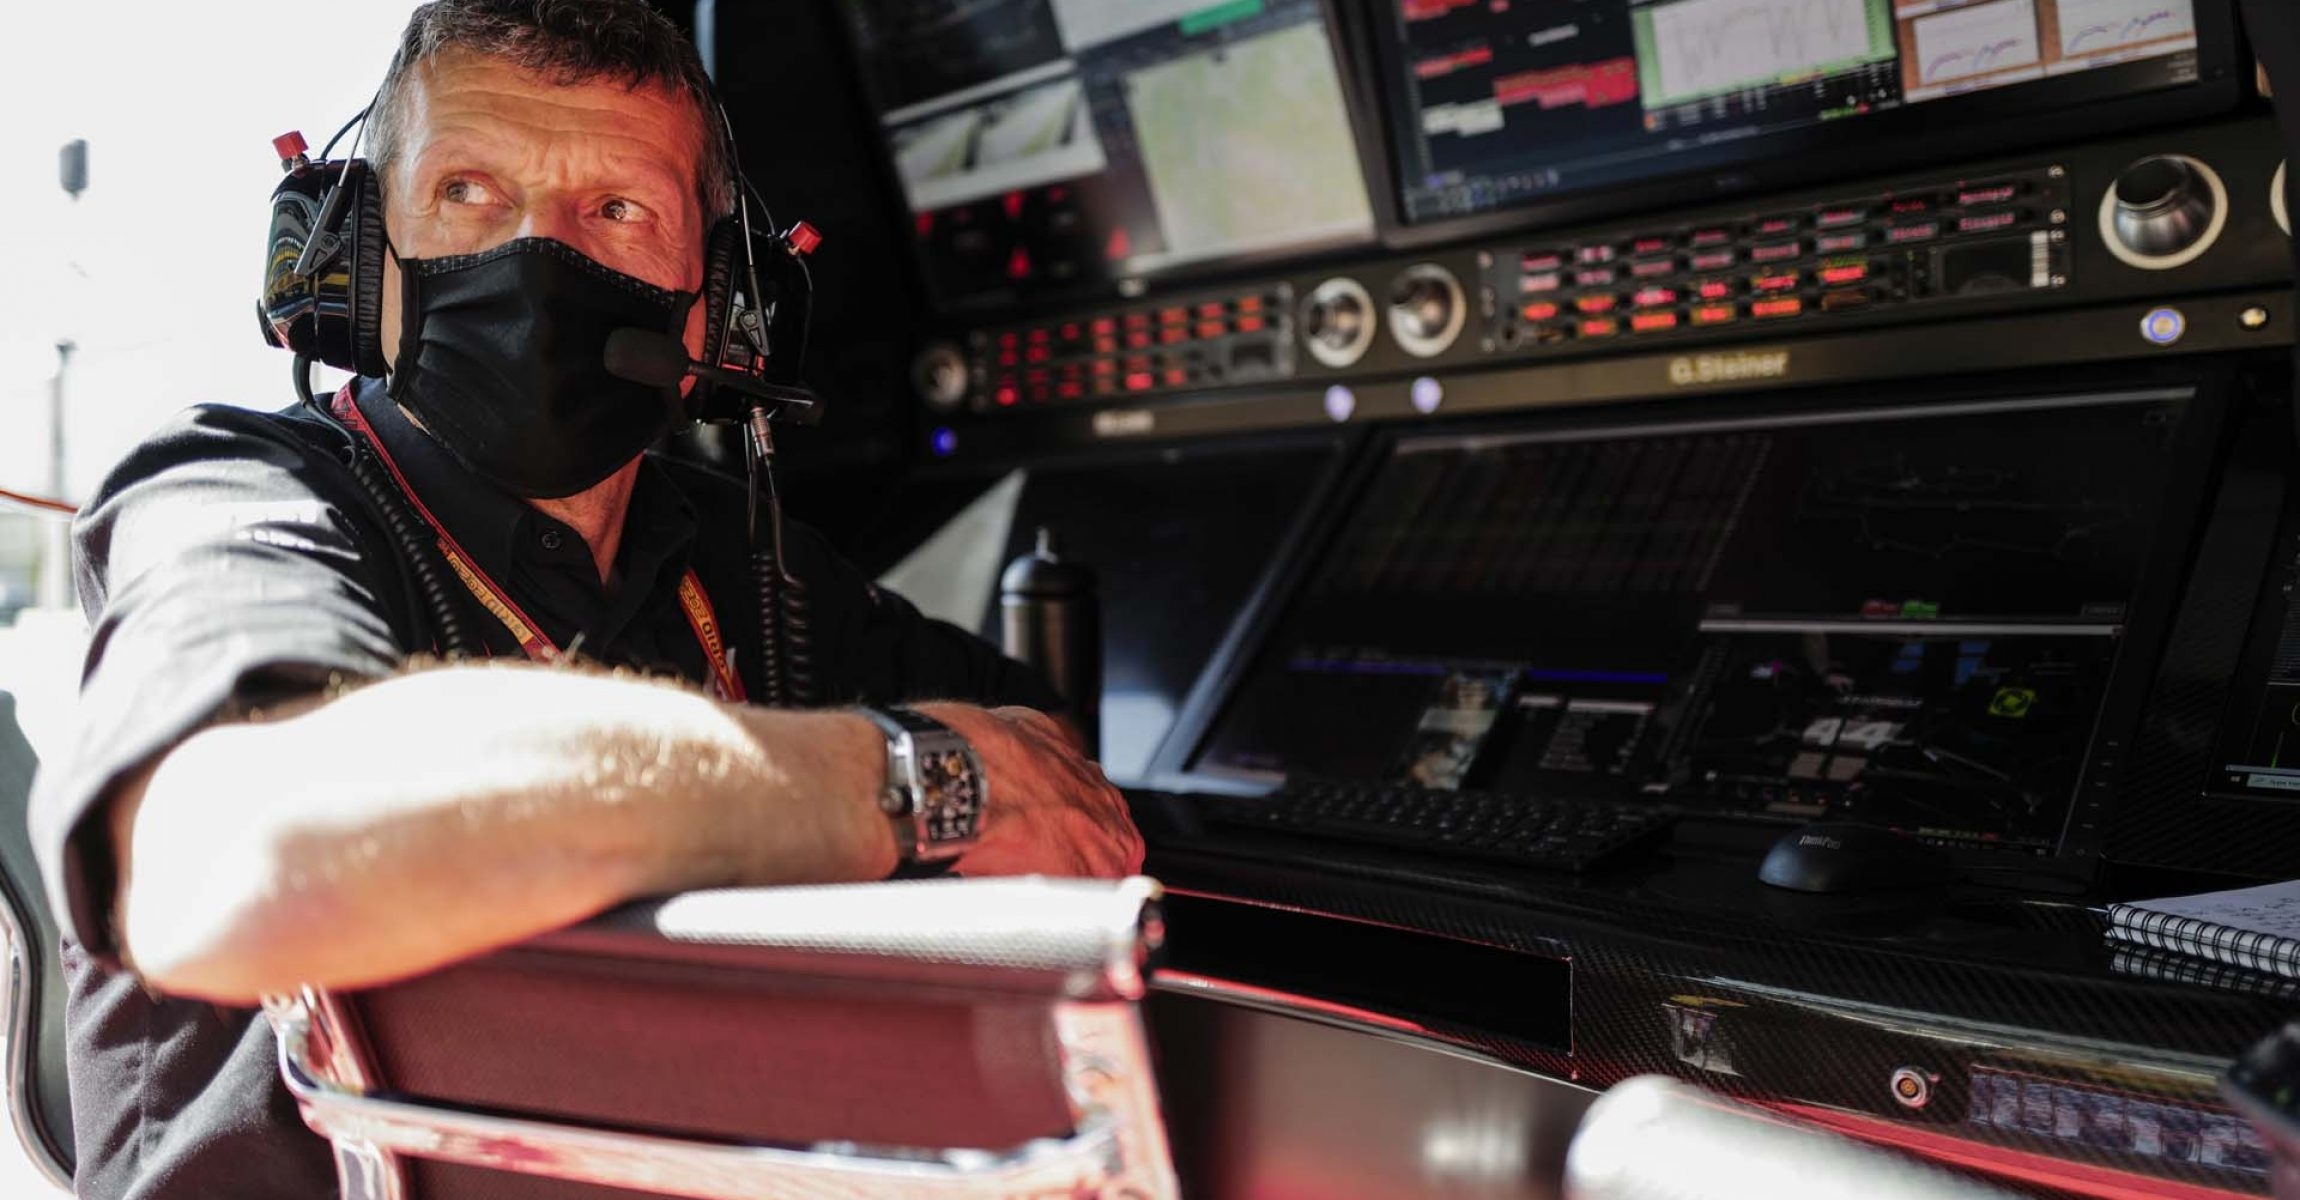 MUGELLO CIRCUIT, ITALY - SEPTEMBER 11: Guenther Steiner, Team Principal, Haas F1, on the pit wall during the Tuscany GP at Mugello Circuit on Friday September 11, 2020, Italy.